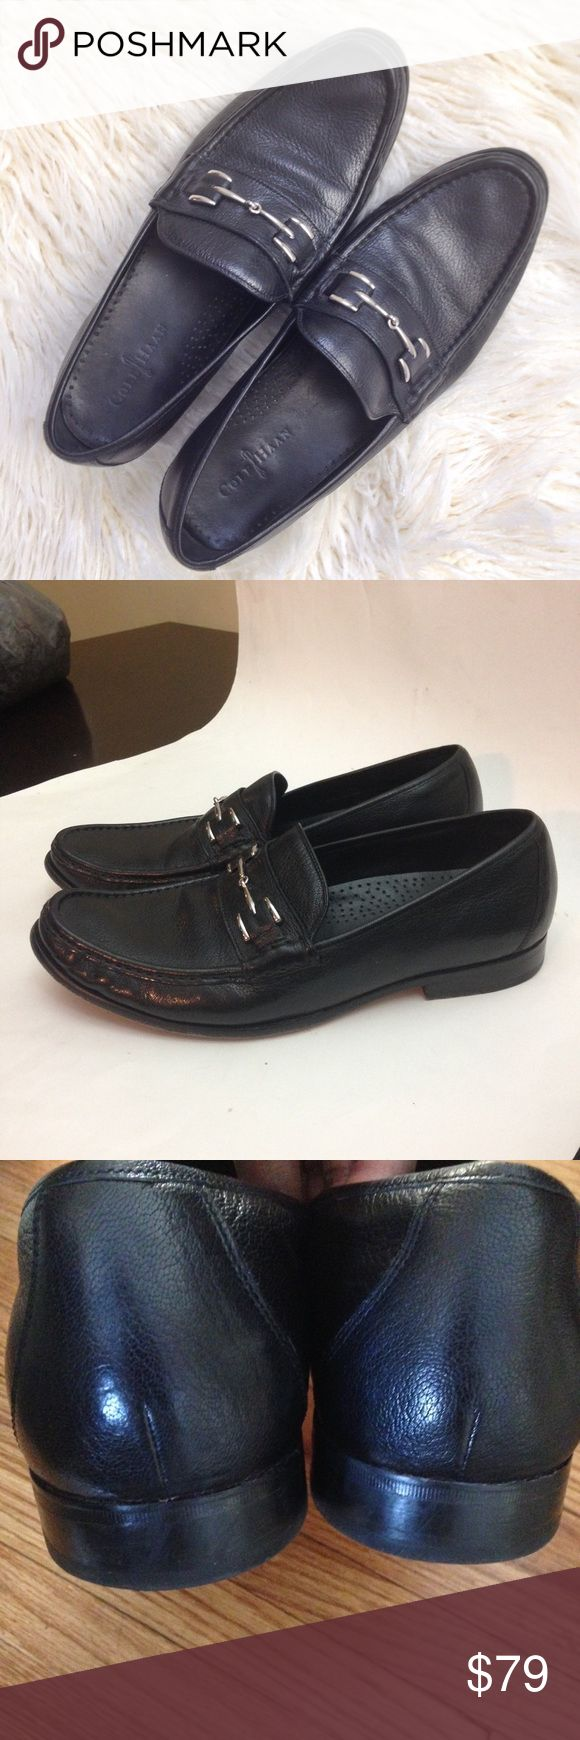 Cole Haan Horse bit Leather Loafers 👞 Up for your consideration. Beautiful black Cole Haan Loafers with Nike Air Technology. Size 13M. Leather Soles. Excellent pre-owned condition. Wasn't worn much. Cole Haan Shoes Loafers & Slip-Ons